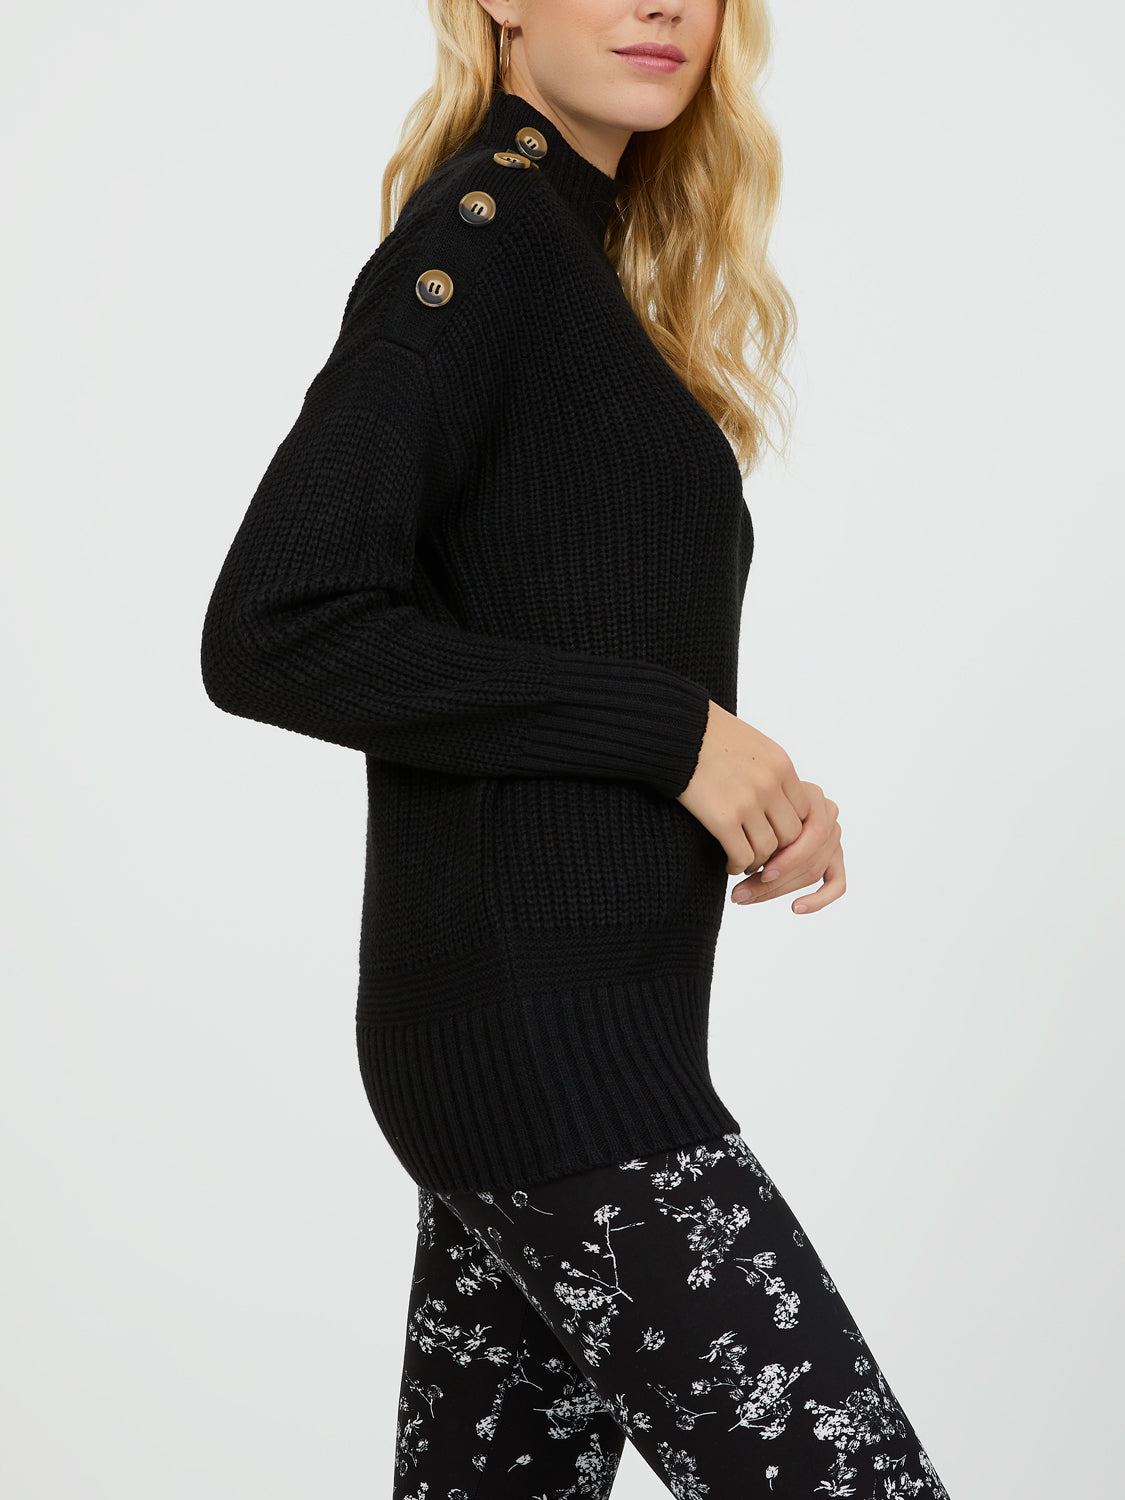 Long Sleeve Mock Neck Sweater